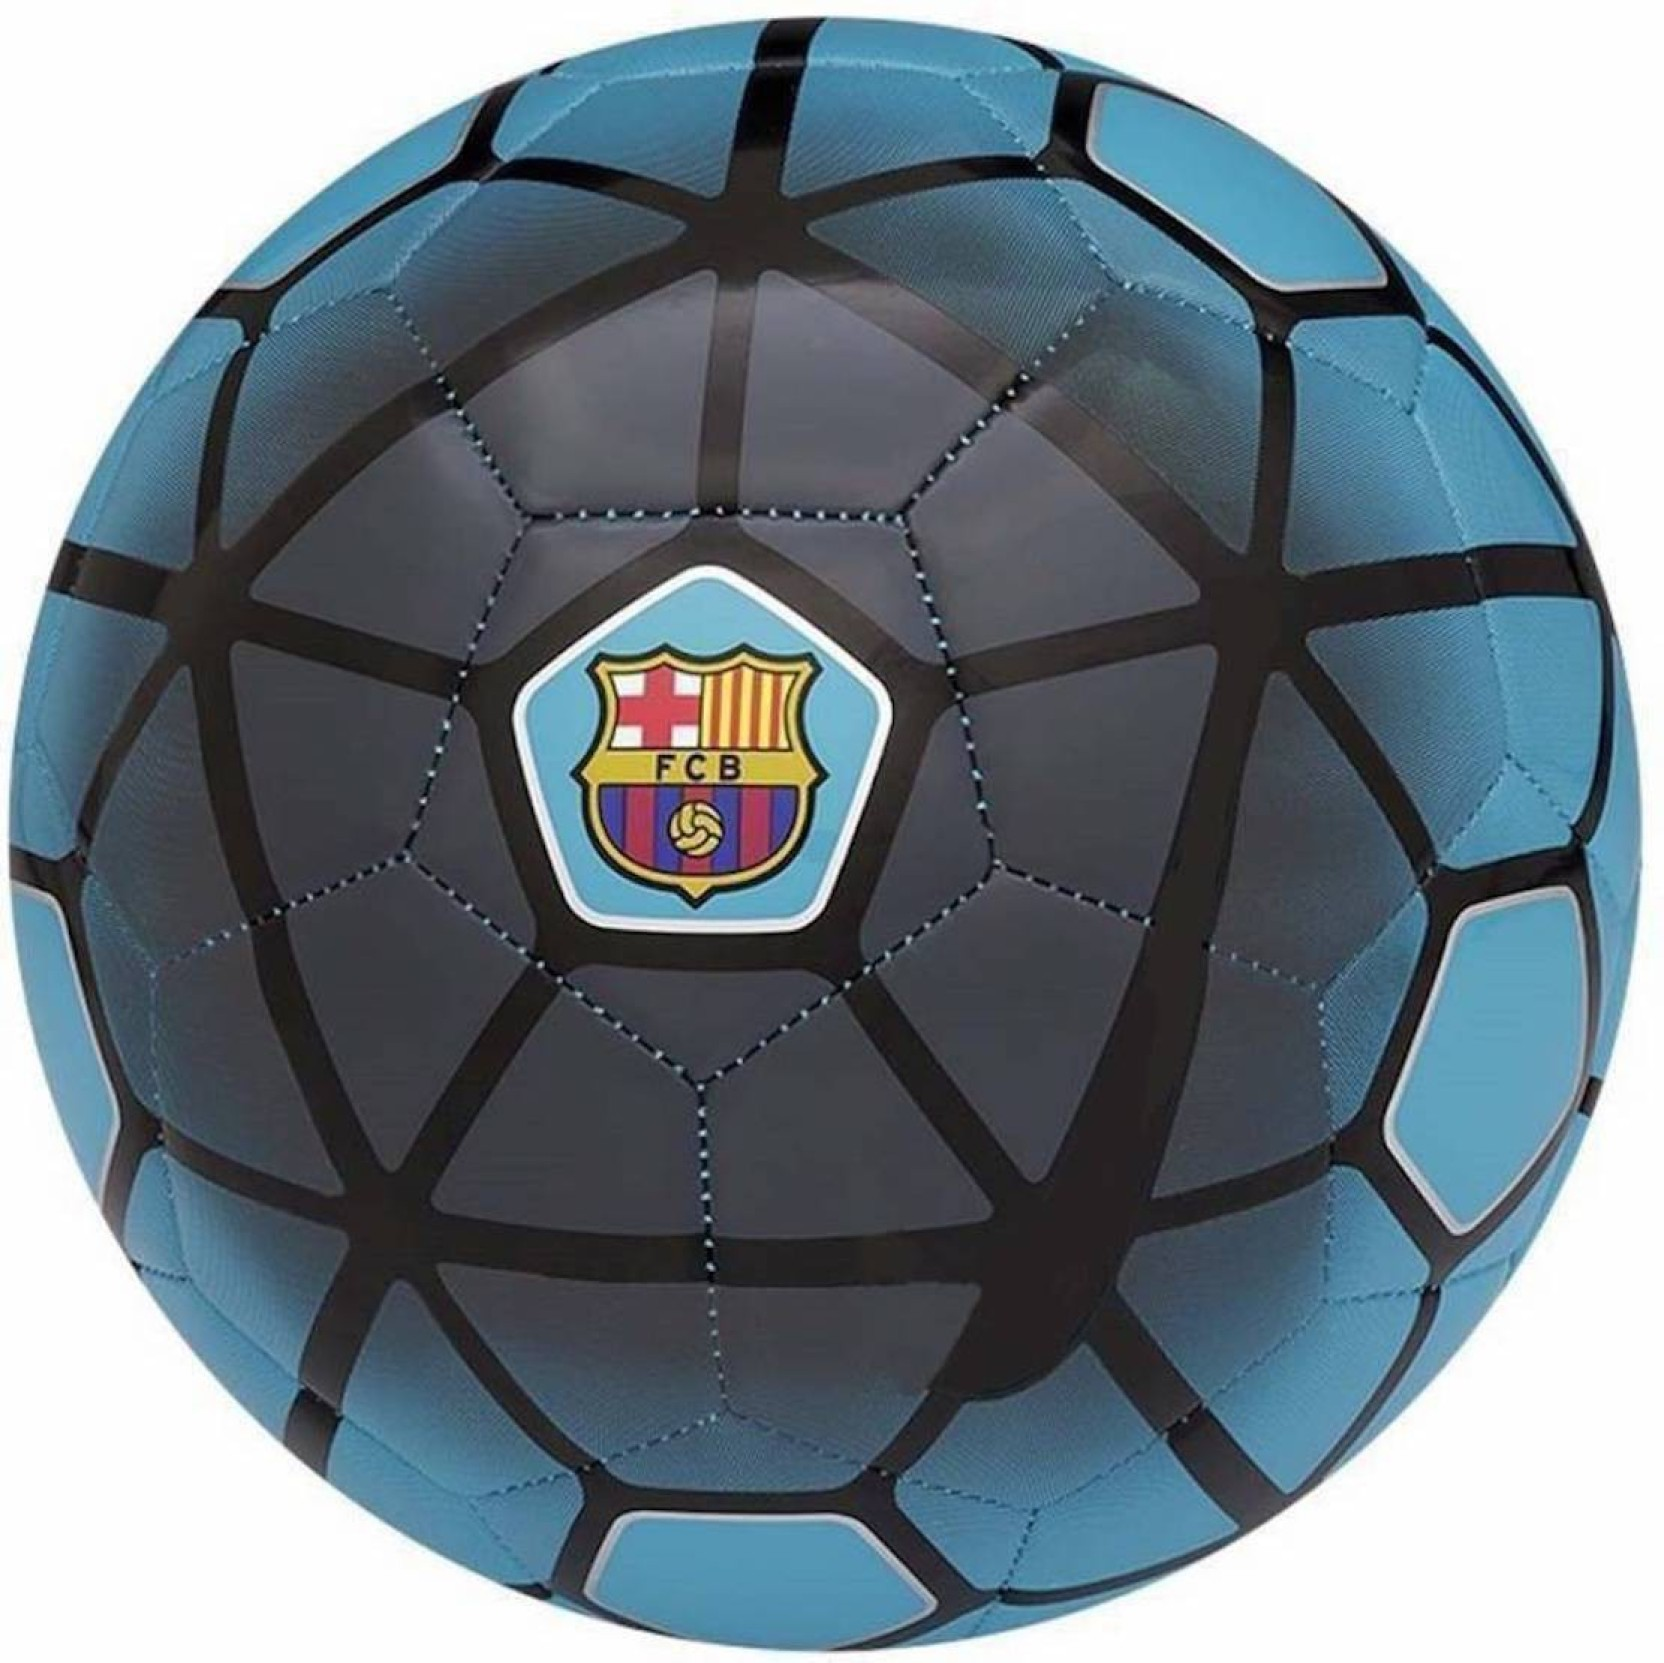 Millets supporter barca collection fifa approved football size jpg  1664x1663 Fcb ball 994661118aa8a